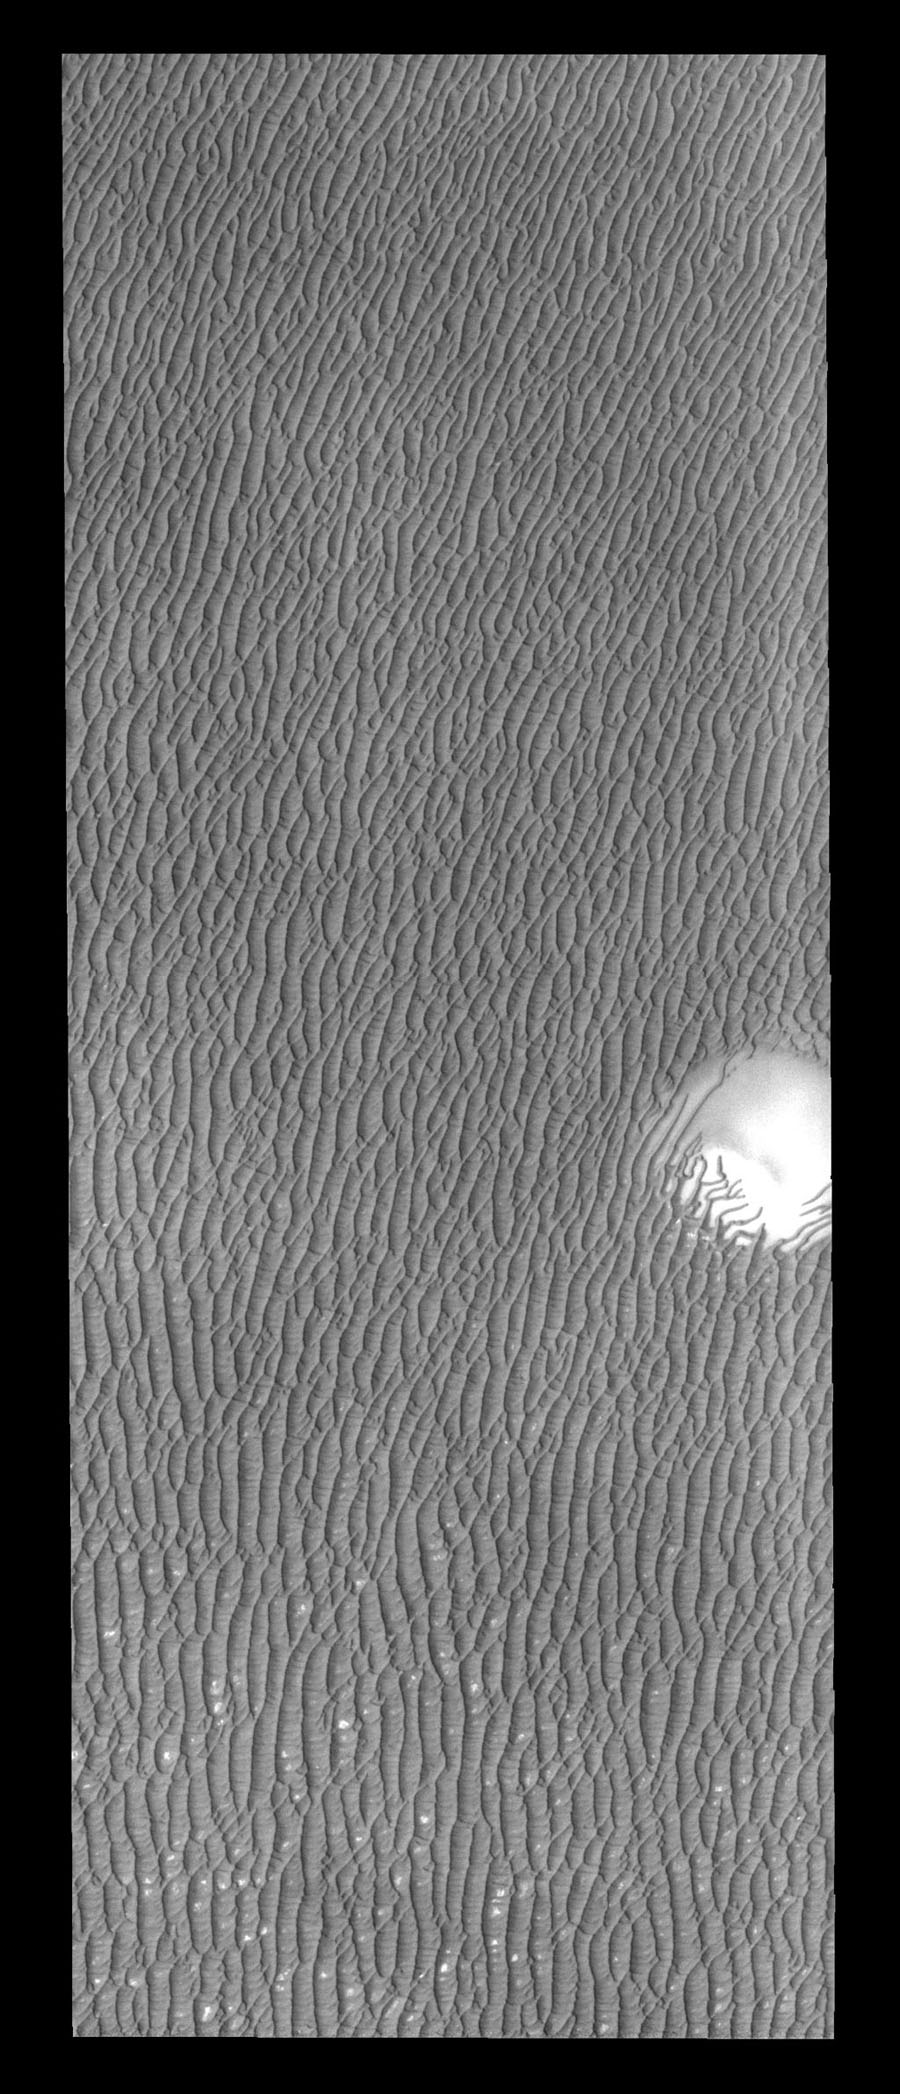 As the season changes from spring to summer, the dunes surrounding the north polar cap become darker and darker as seen by NASA's 2001 Mars Odyssey spacecraft.